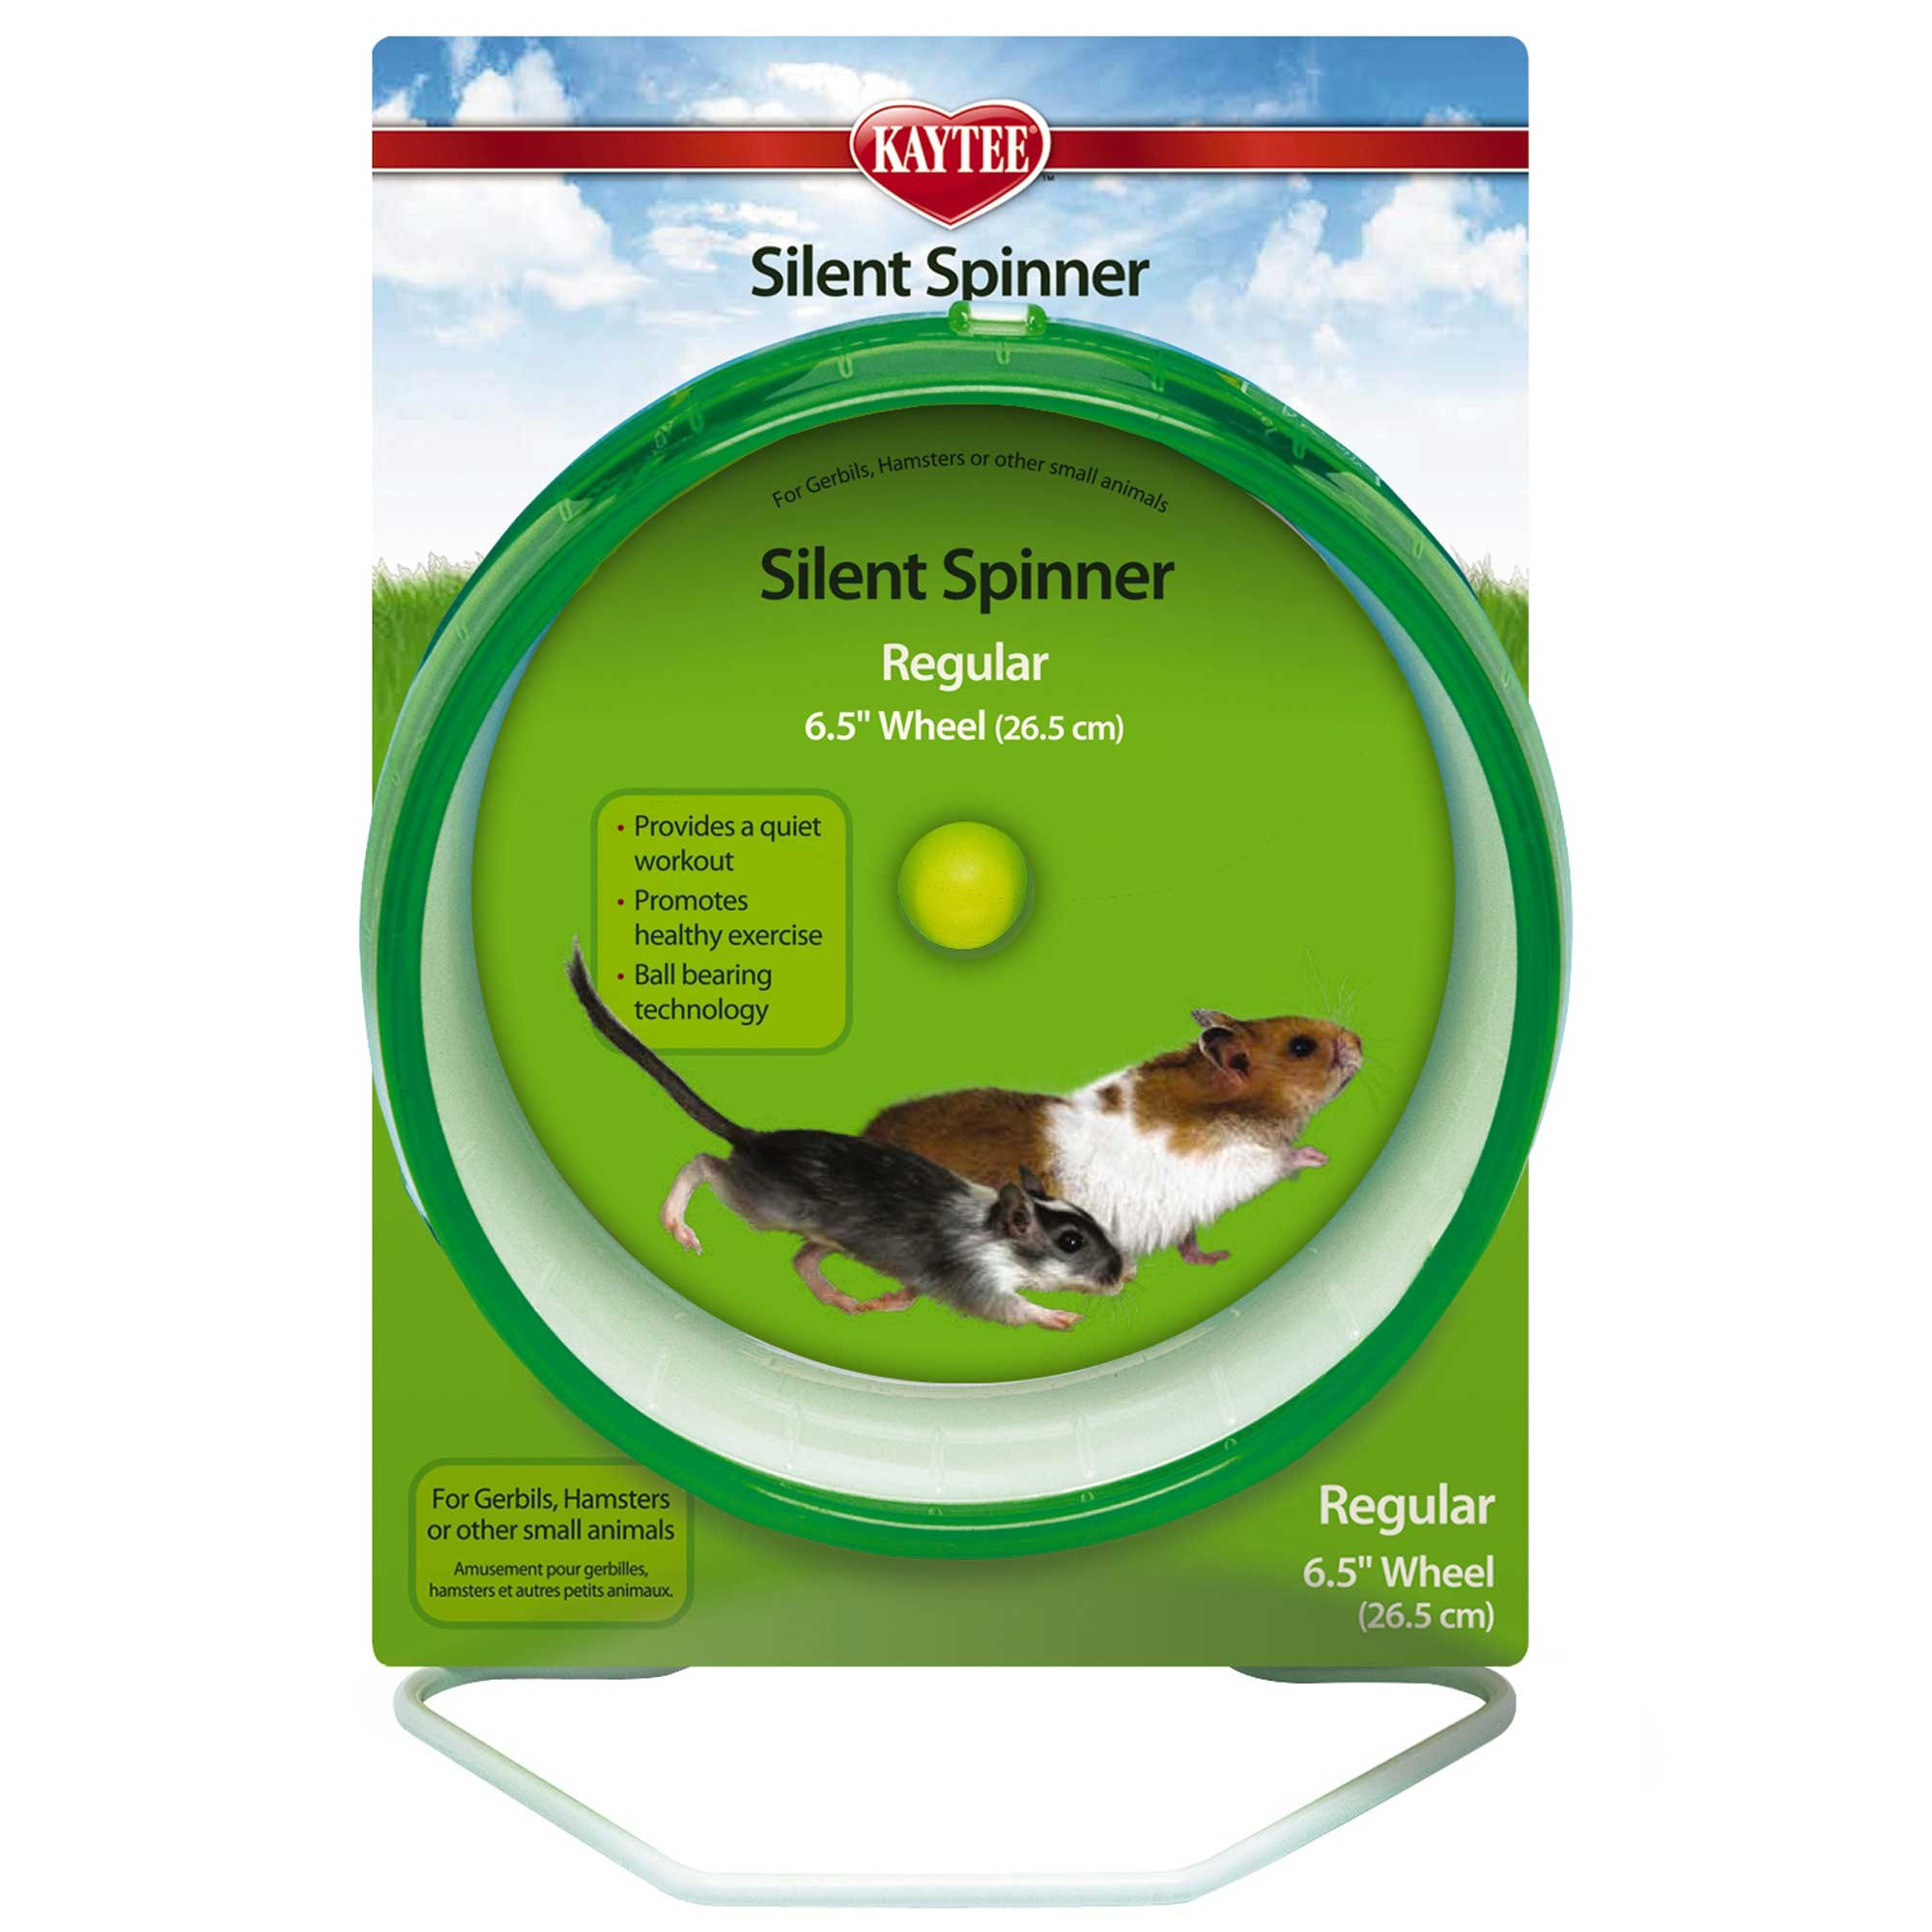 08/06/ · Best cat food for elderly cat from Petsmart or Petco. - Answered by a verified Cat Veterinarian5/5.